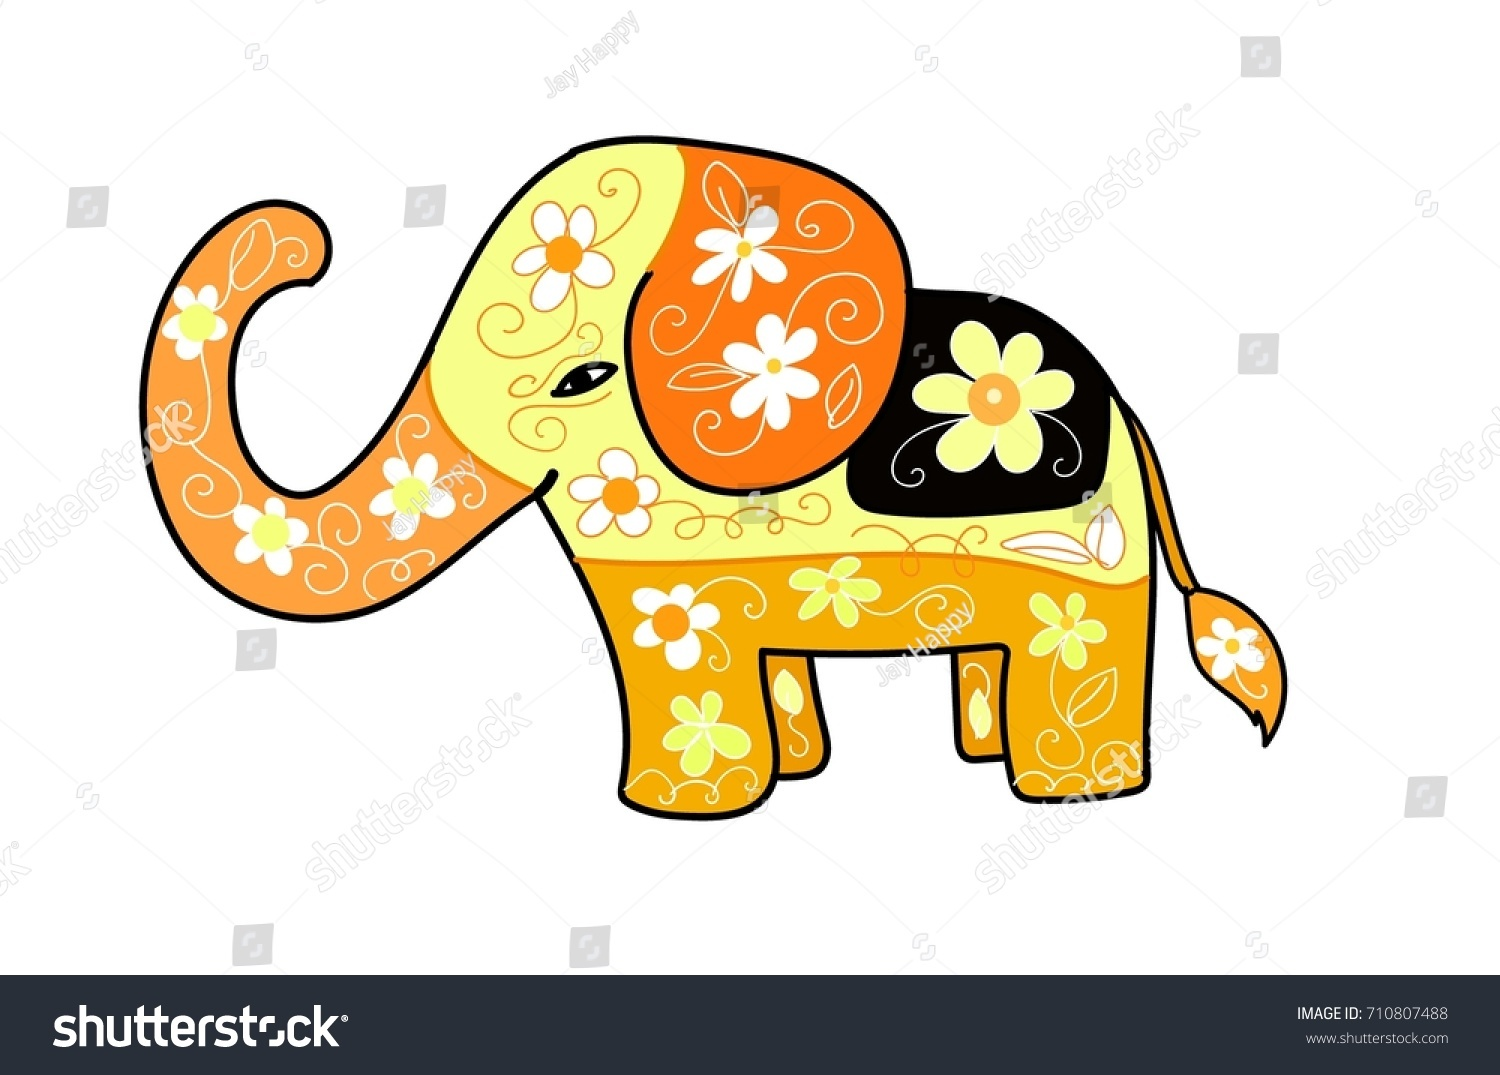 Cute Baby Elephant Cartoon Vector Animal 710807488